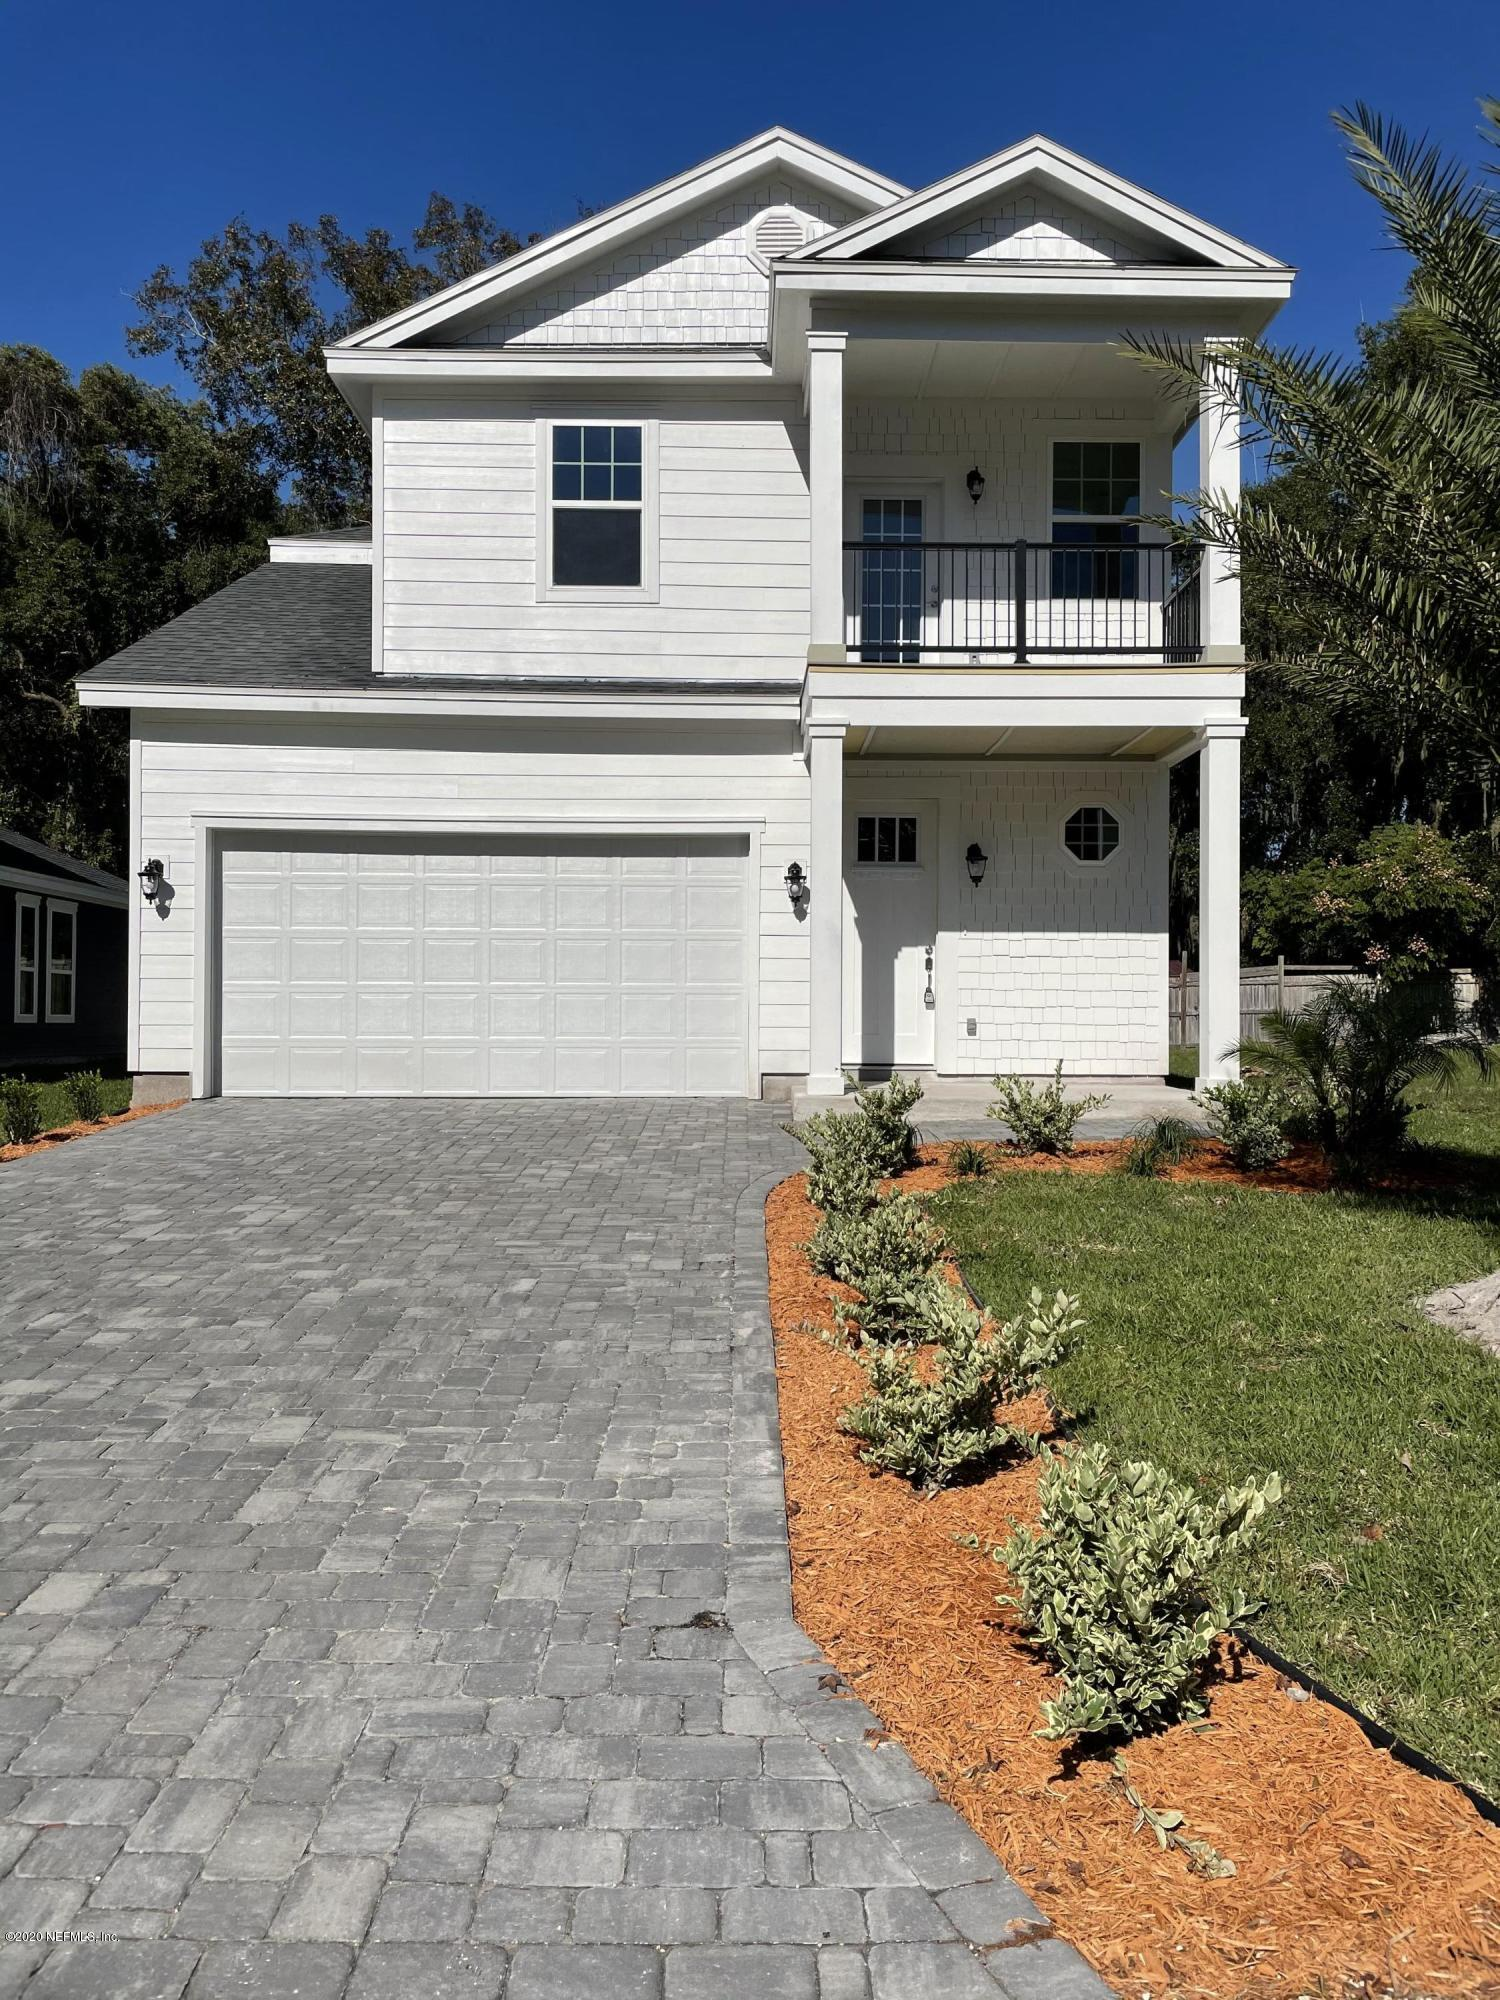 LOT 7 LEWIS, GREEN COVE SPRINGS, FLORIDA 32043, 4 Bedrooms Bedrooms, ,2 BathroomsBathrooms,Residential,For sale,LEWIS,1082228